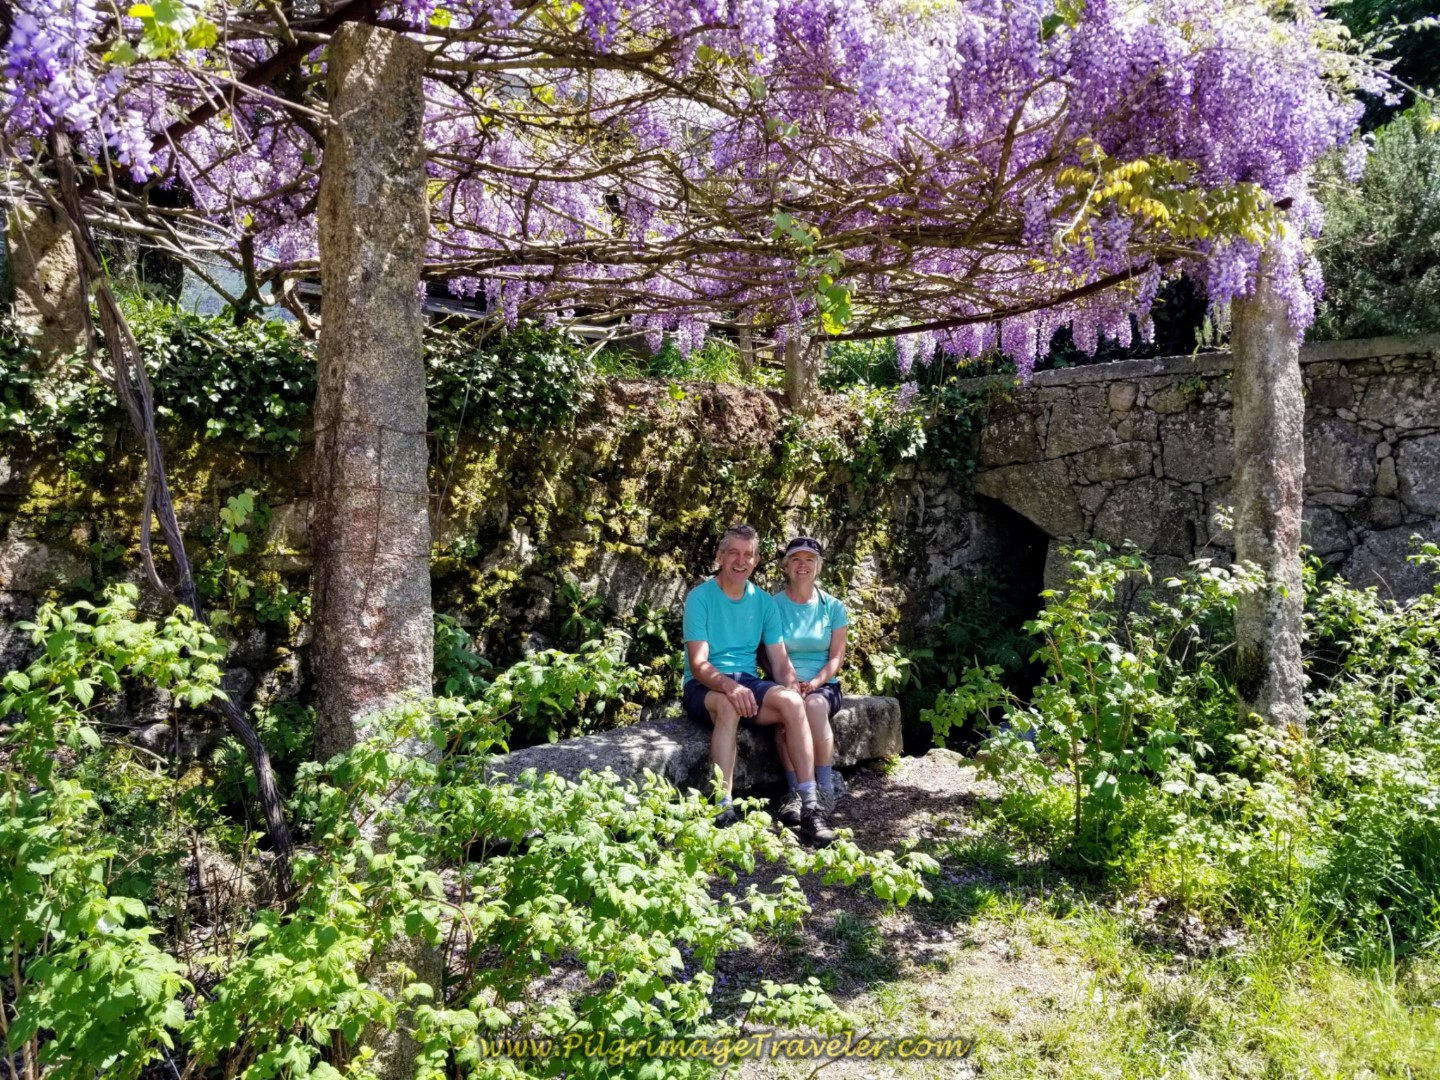 Rich and Elle Rest in the Wisteria Arbor at the Quinta da Portela Facha